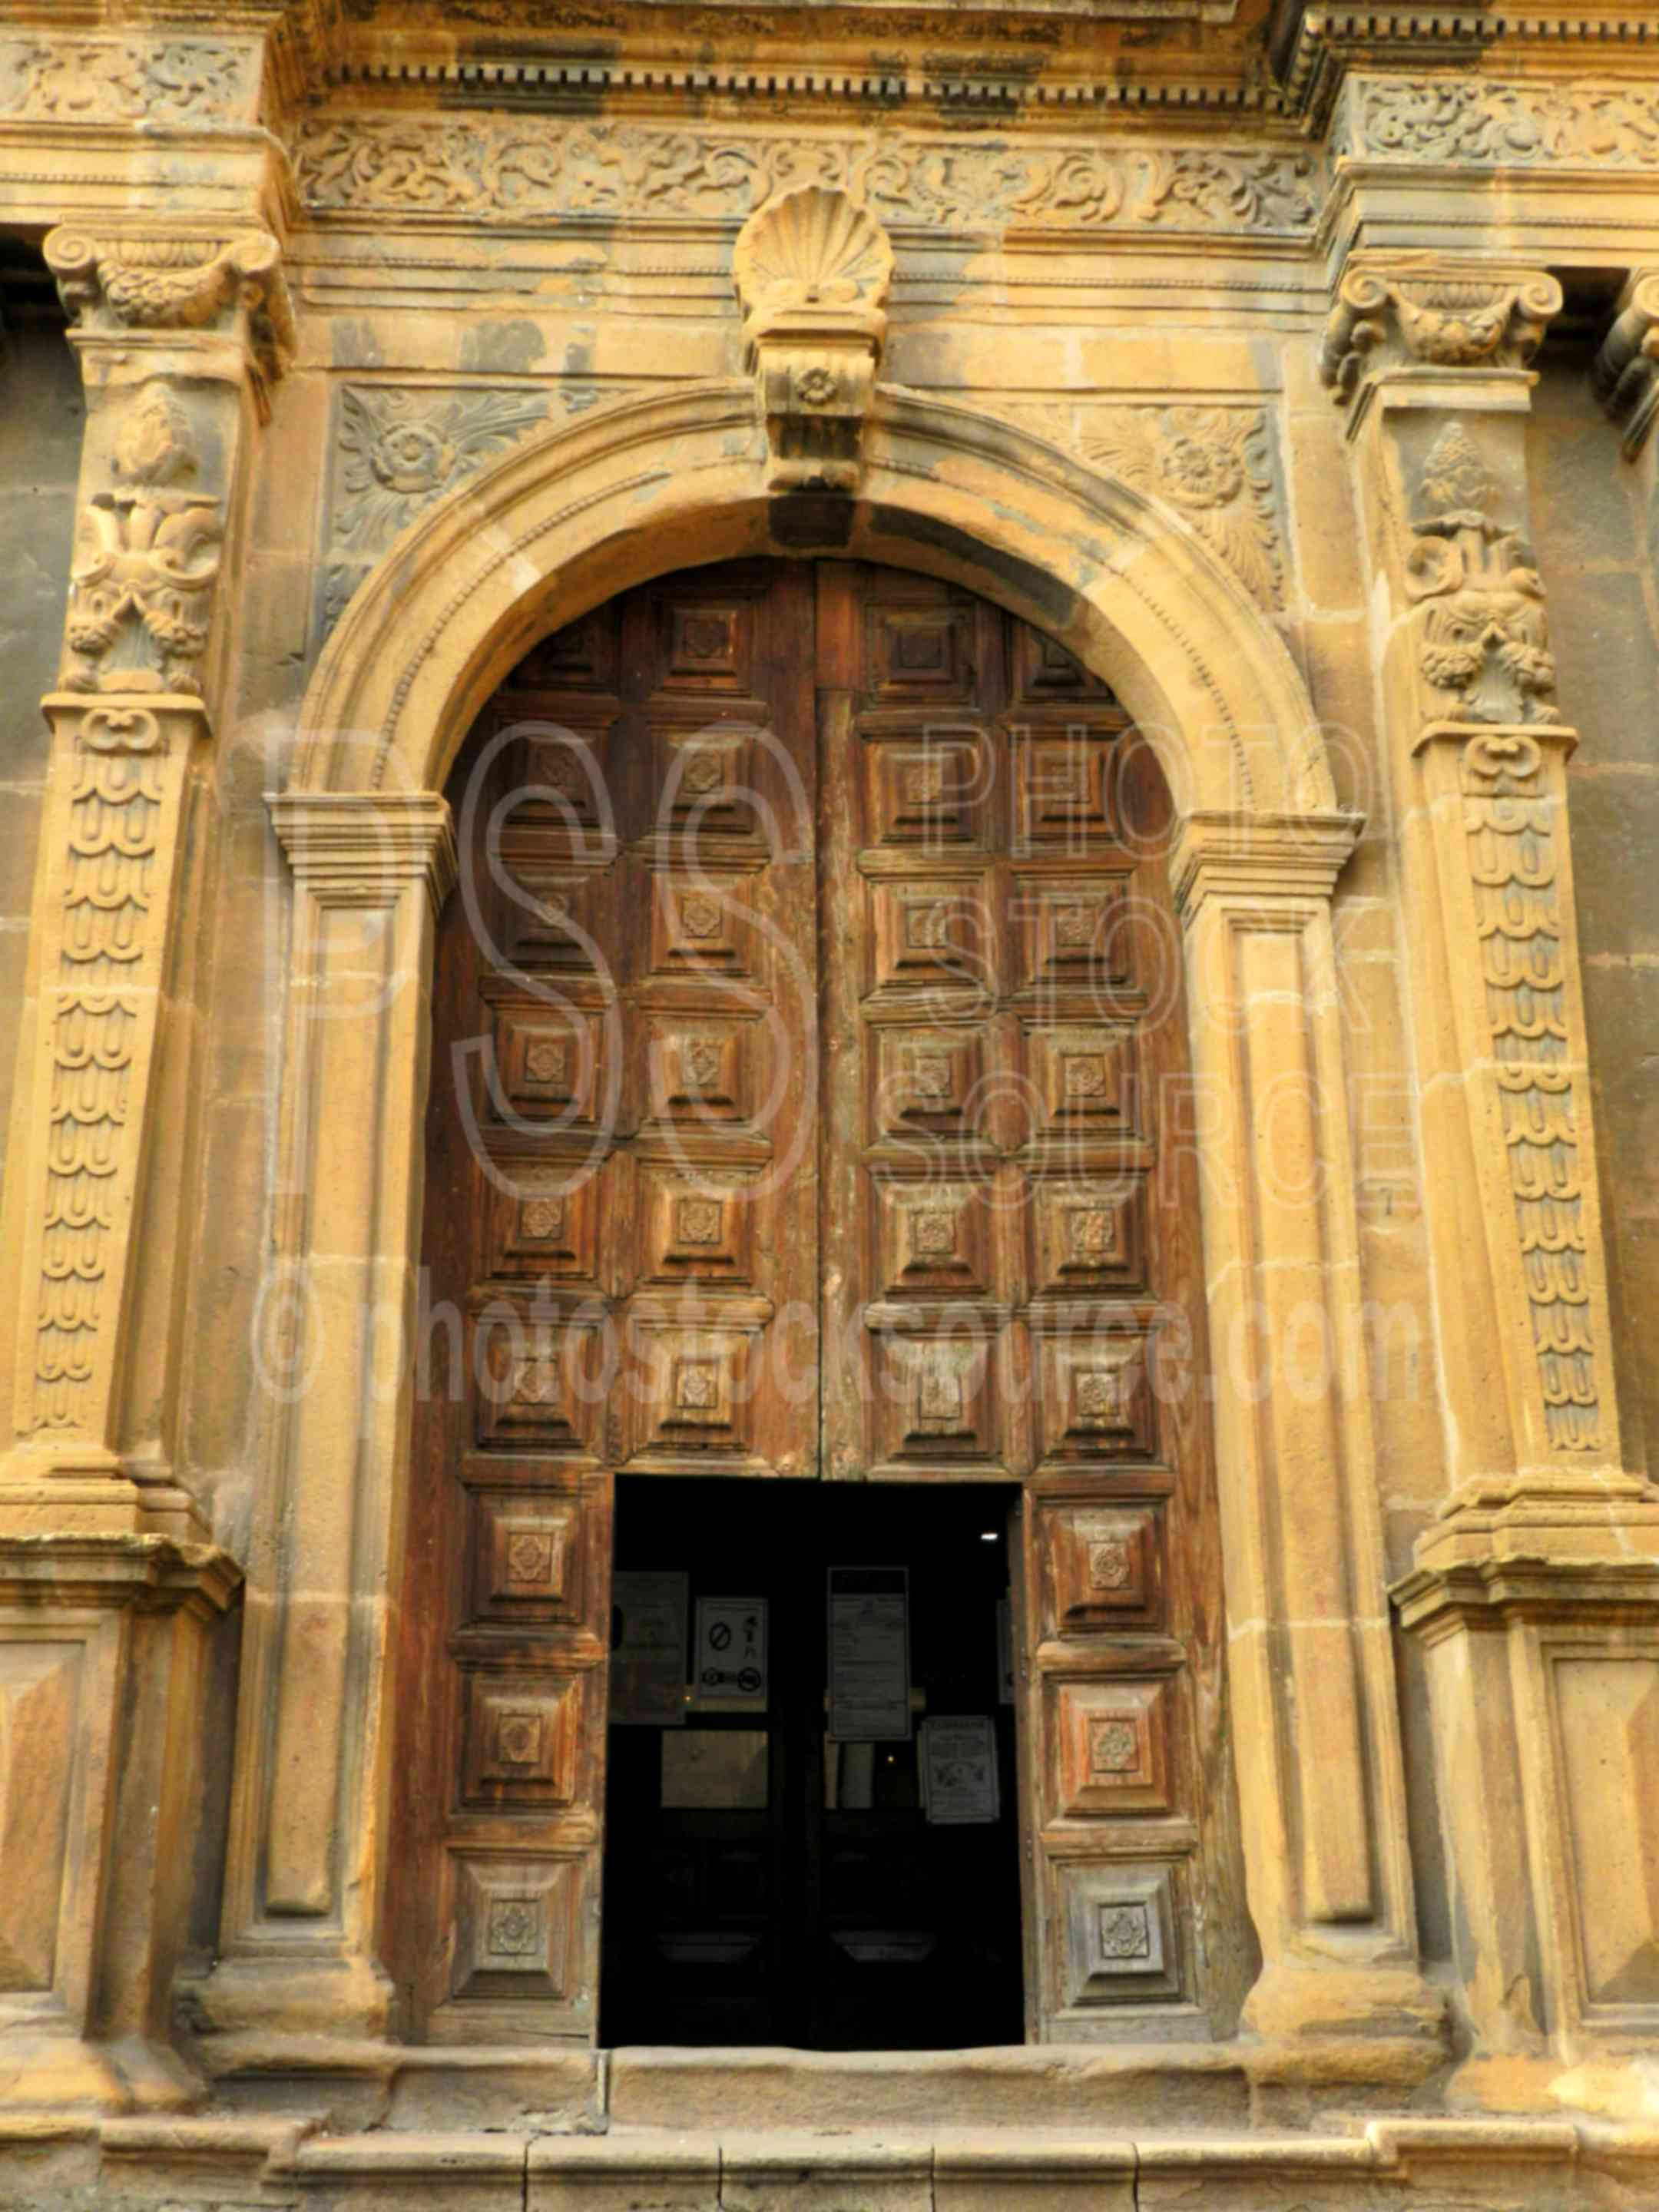 Church of St. Rocco Doorpiazza armerinachurch : rocco doors - Pezcame.Com